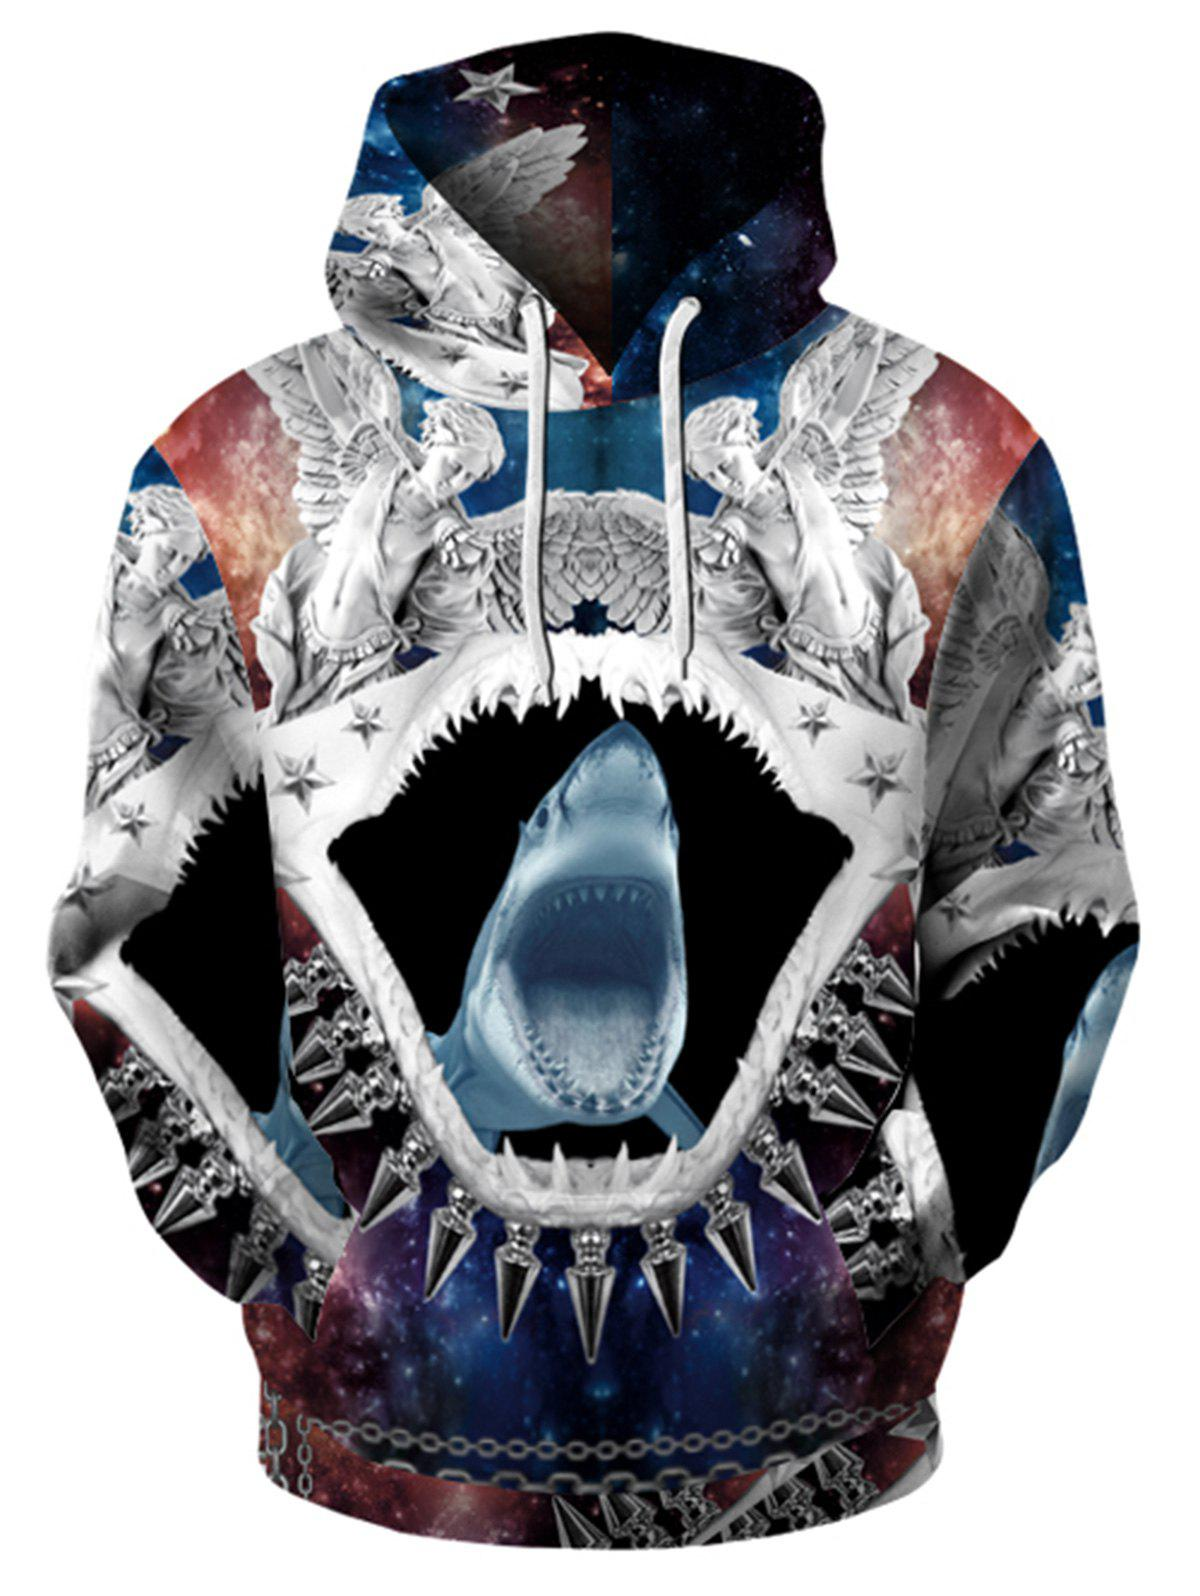 Affordable 3D Printed Trippy Pullover Hoodie